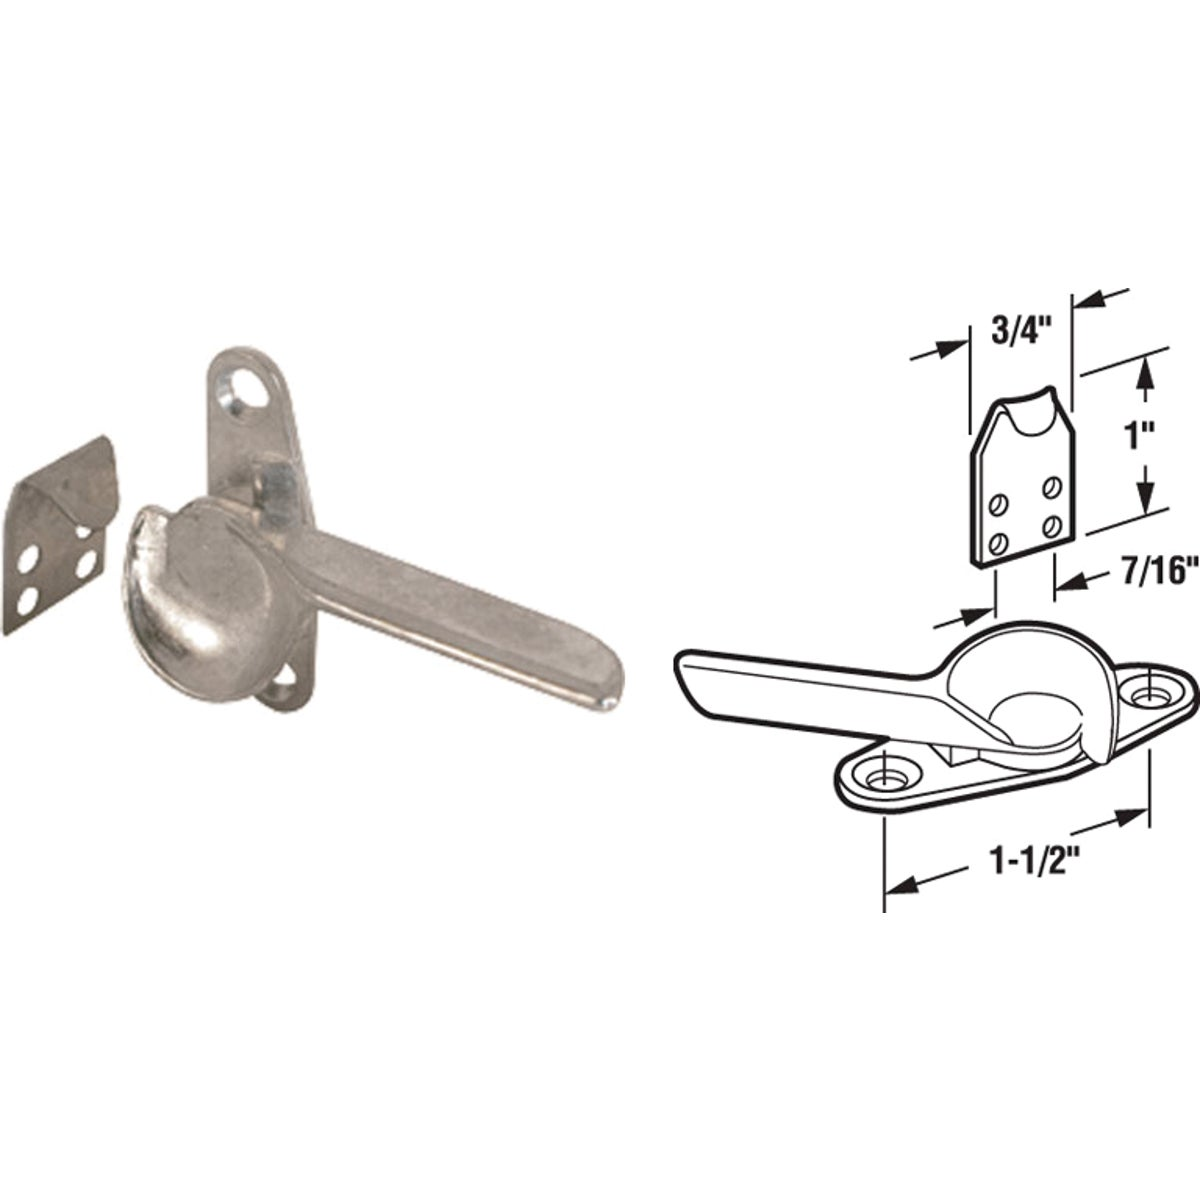 SLIDING WINDOW SASH LOCK - 17445 by Prime Line Products